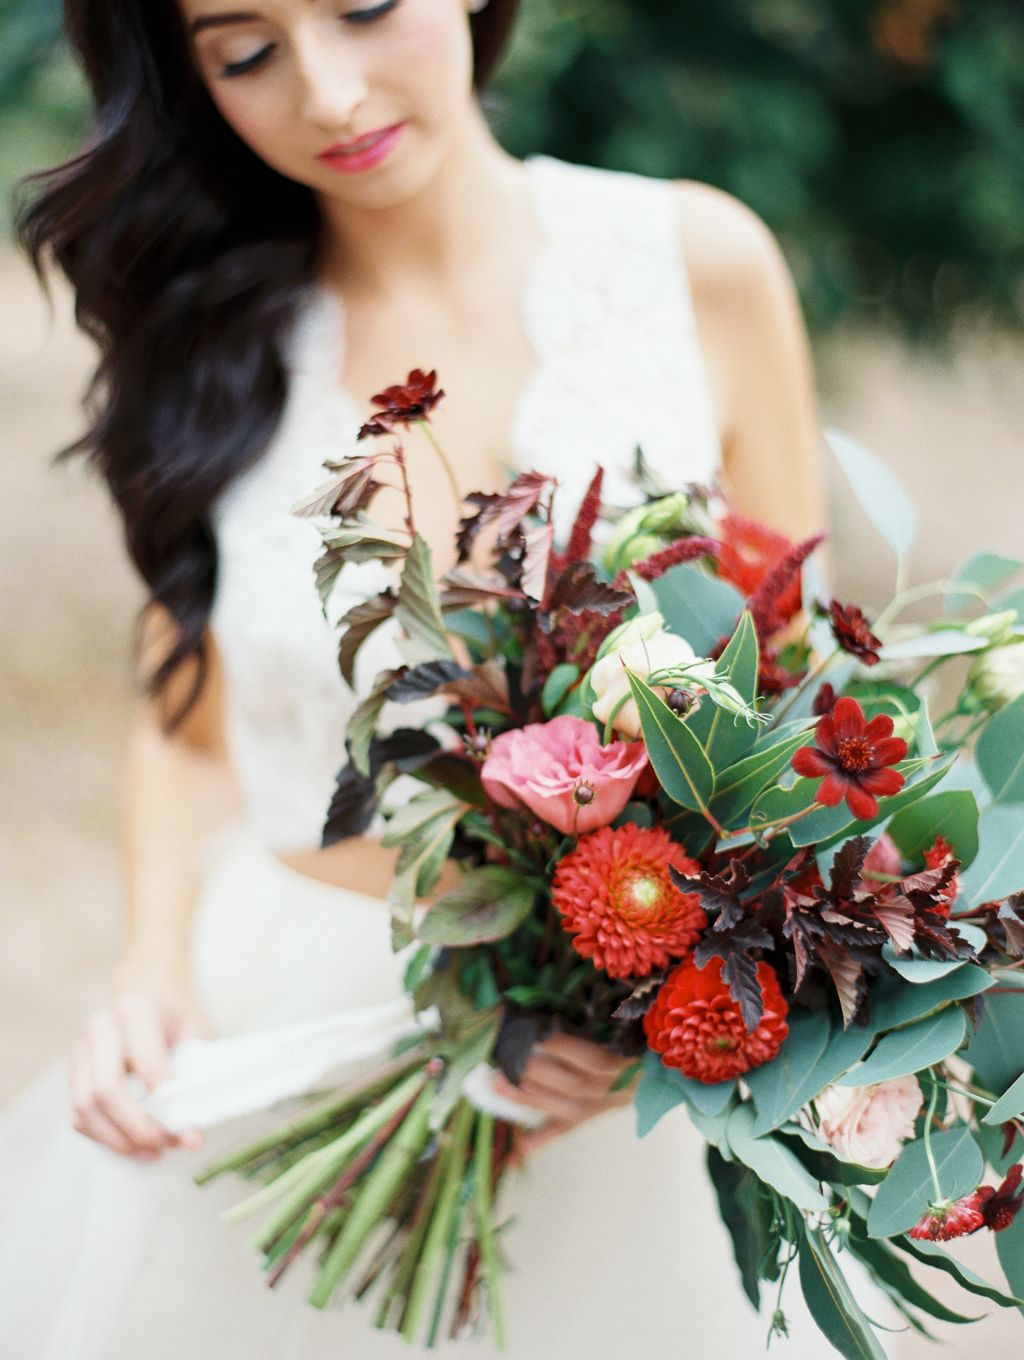 best images about wedding flowers on pinterest wedding venues